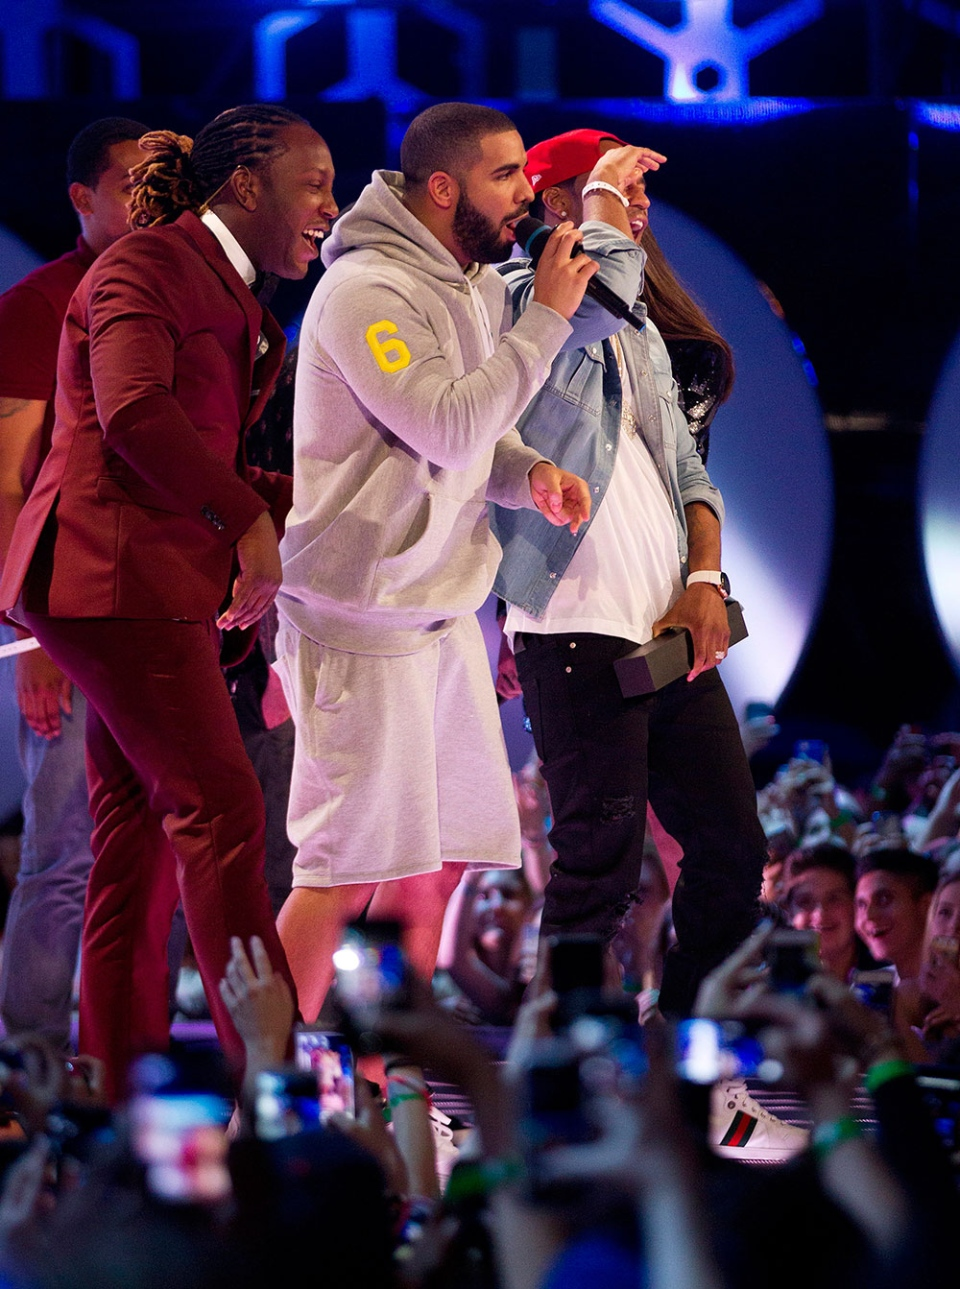 Drake, centre, makes an appearance on stage during the 2015 Much Music Video Awards in Toronto on Sunday, June 21, 2015. THE CANADIAN PRESS/Chris Young